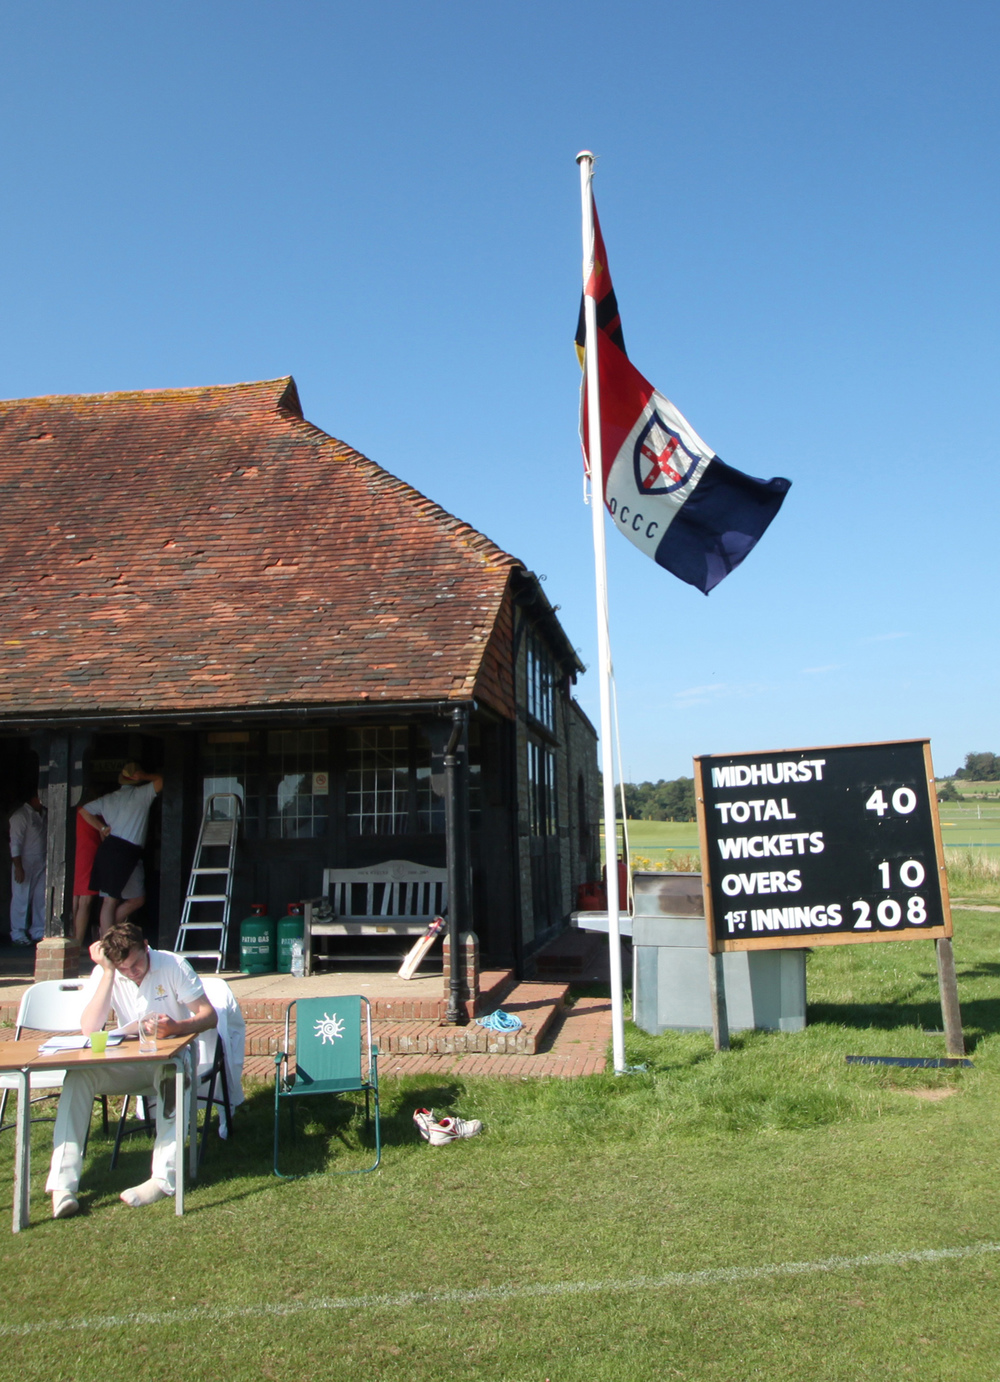 OCCC Flag at Midhurst.jpg